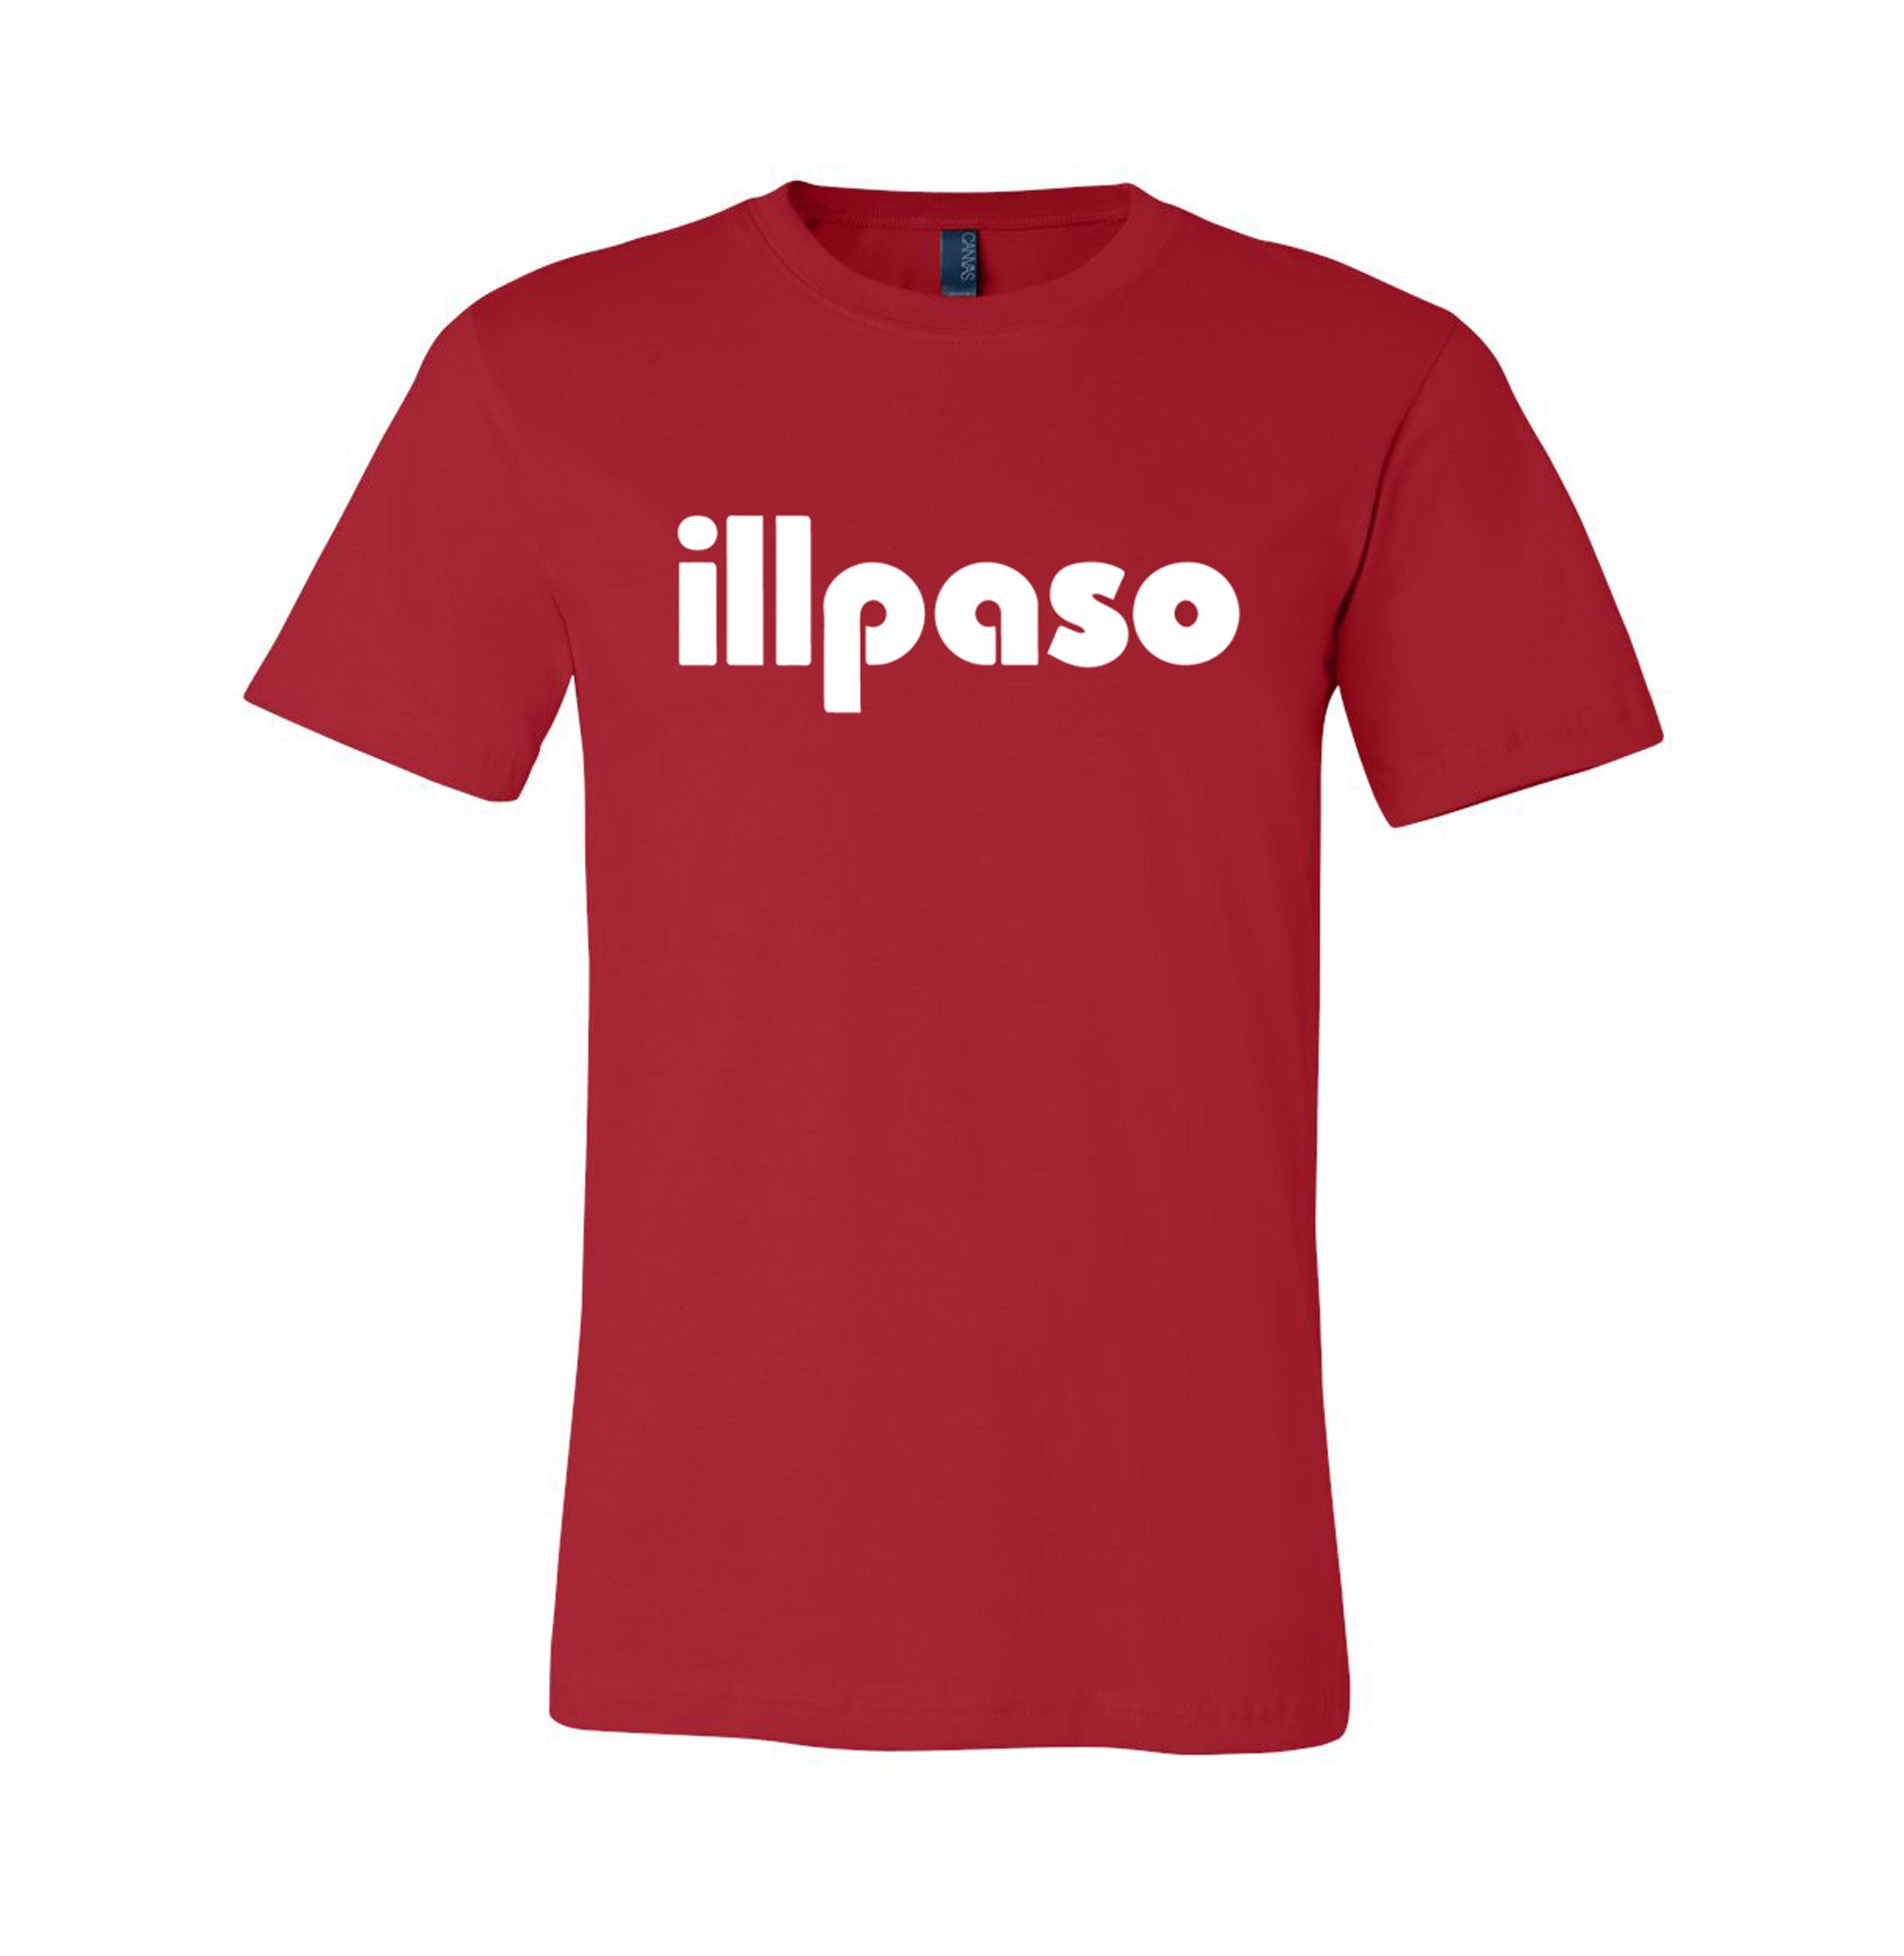 """Diablos Tribute"" Unisex T-shirt (Red) by illpaso"